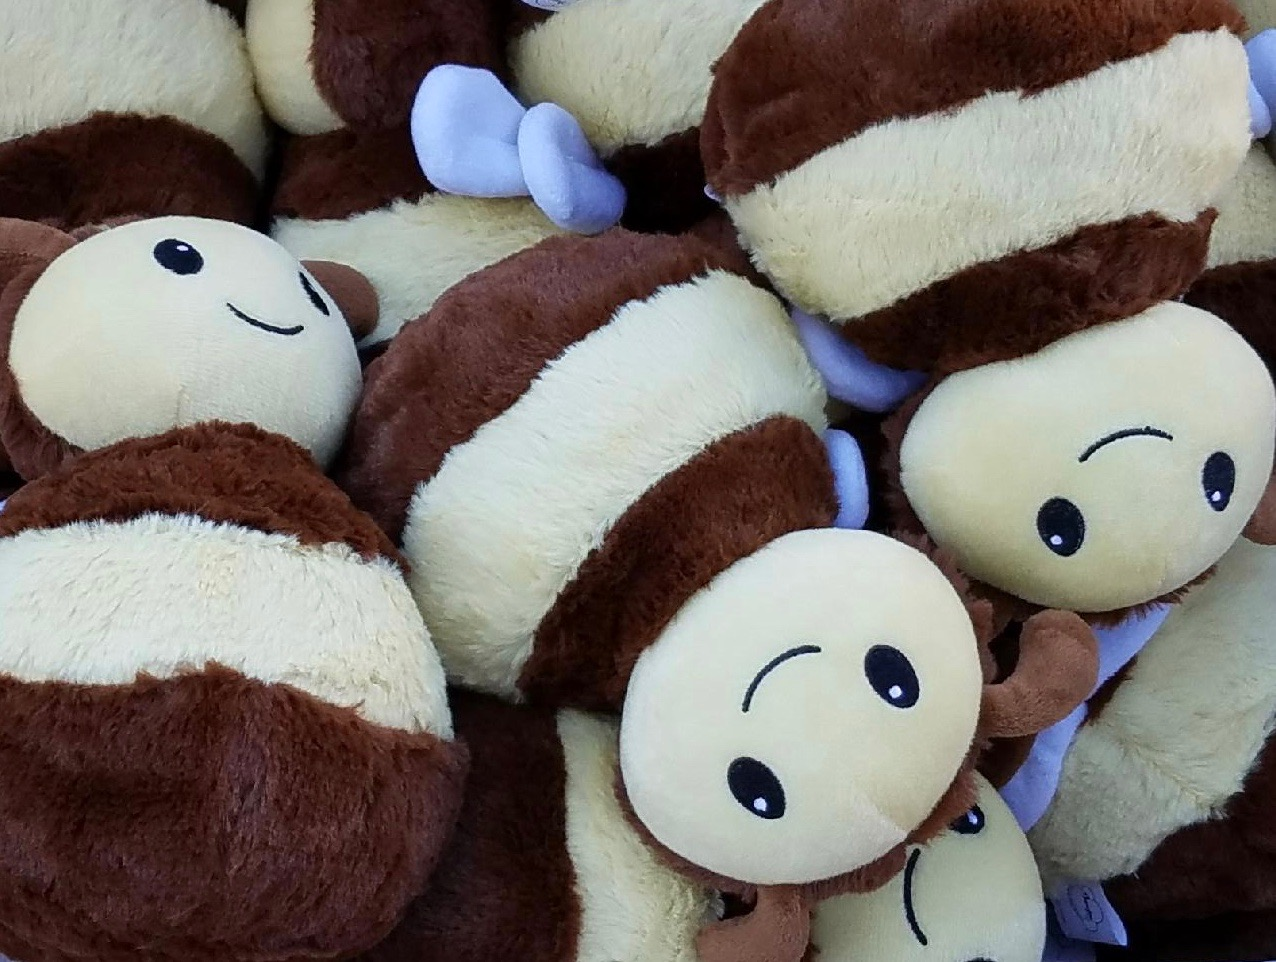 The Imagine Plush Bee